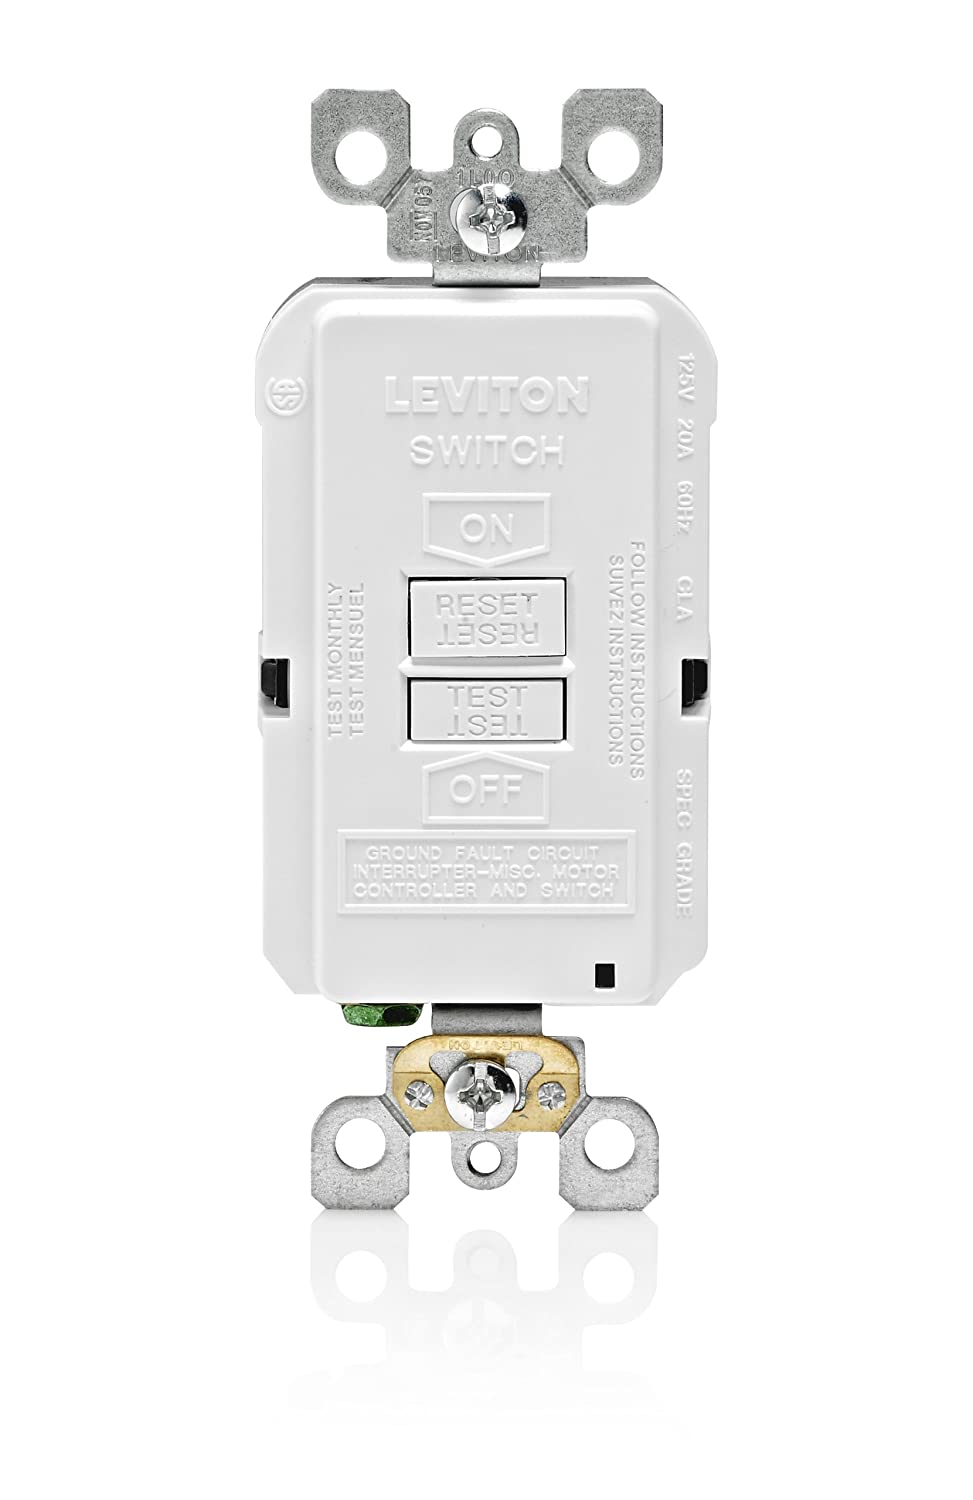 Leviton X7590 W 20 Amp 125 Volt Smartlock Pro Slim Blank Face Gfci Gardner Bender Gfi3501 Ground Fault Receptacle Tester And Circuit White Interrupter Outlets